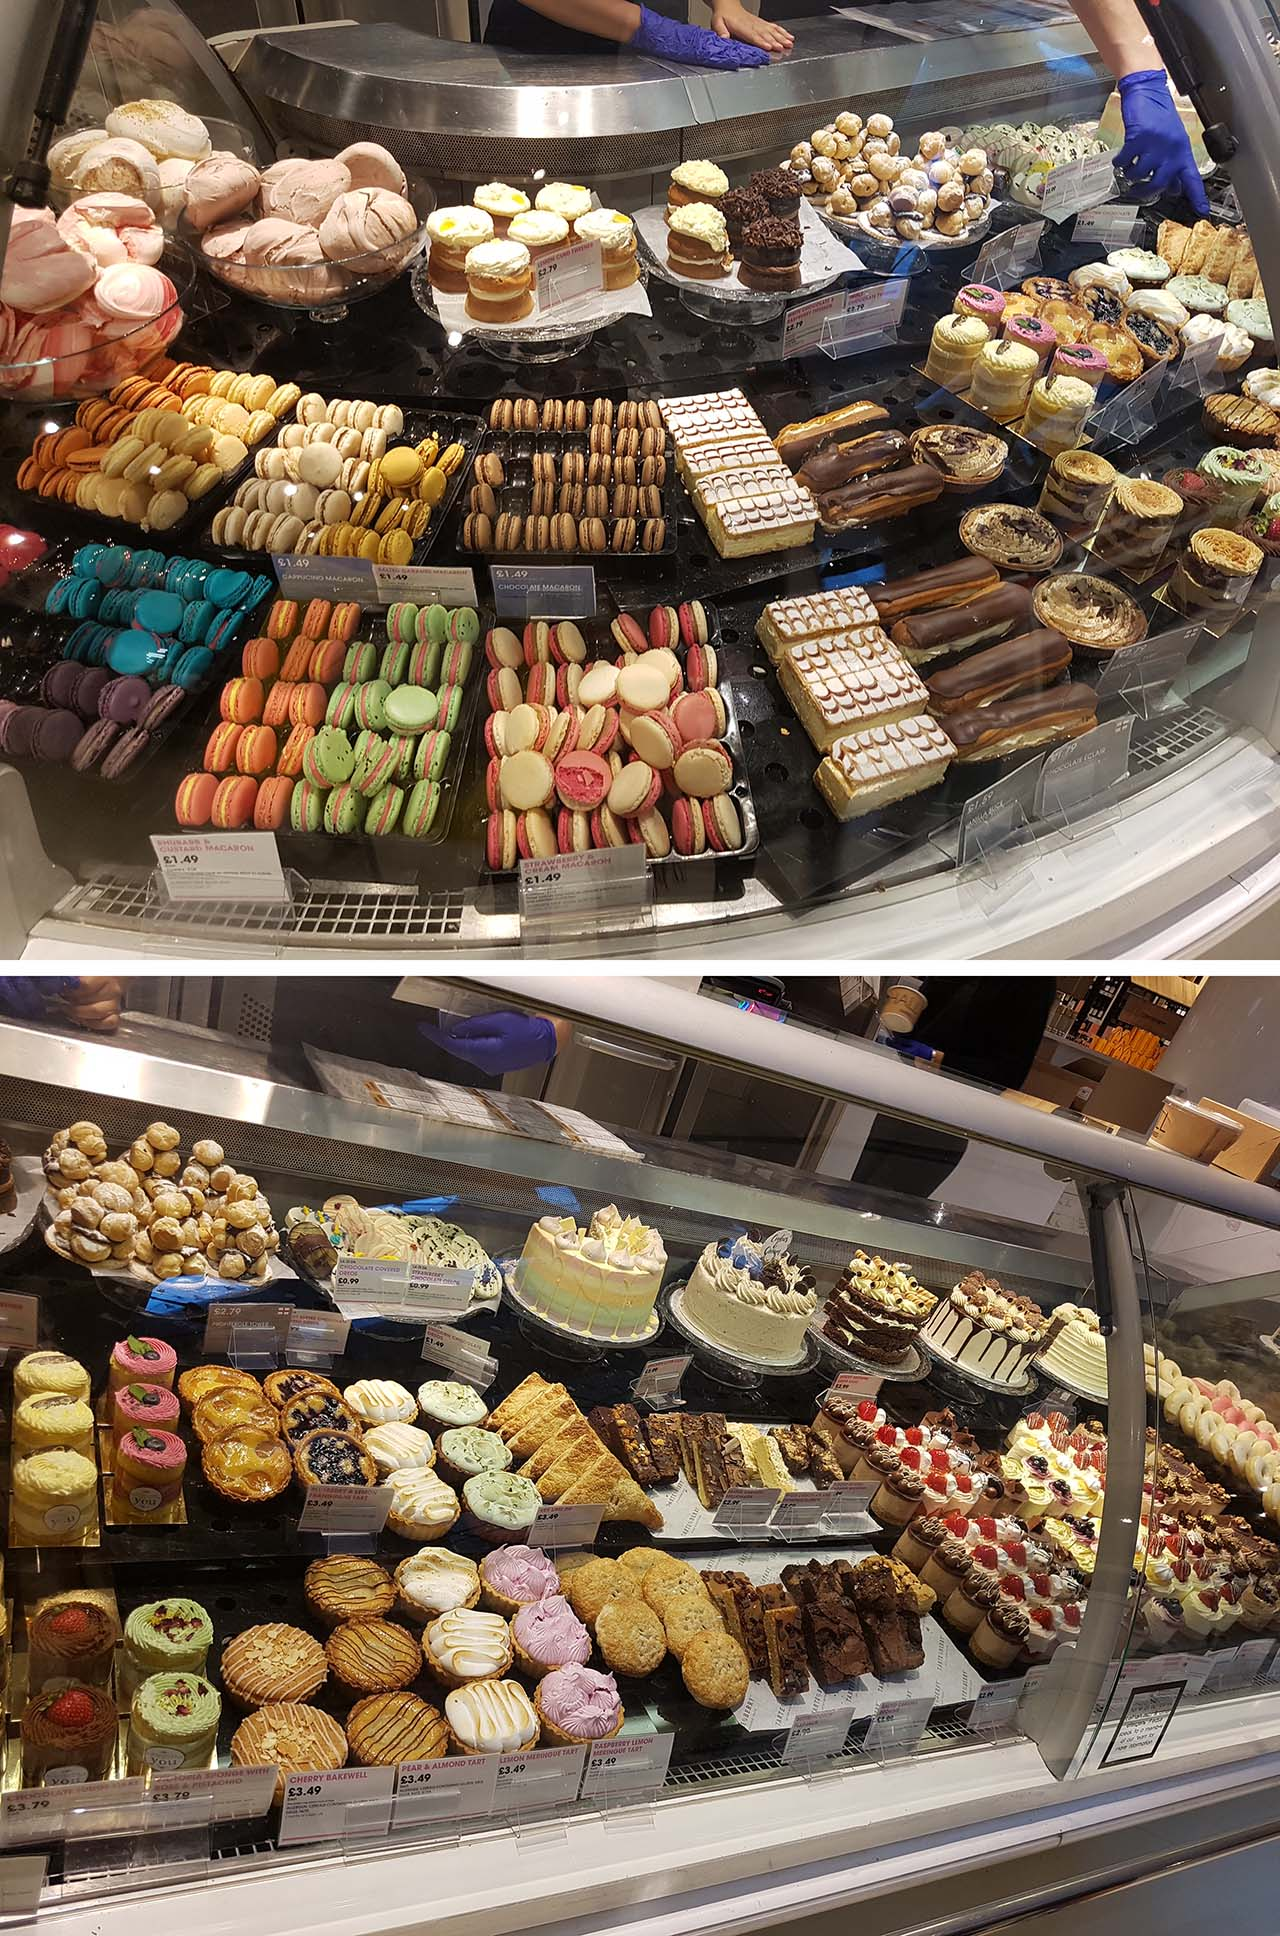 My Autumn Beauty Day: Catching Up With Favourite Brands [Part 2] - Selfridges Dessert Stand: Whilst not beauty related, I could not leave Selfridges without a stop at the Selfridges Dessert Stand! I LOVE this part of the Selfridges Food Hall. Besides makeup and beauty, food is another passion of mine and I especially love desserts! Food is another beautiful aspect of life that I enjoy so after eyeing everything up I decided to buy some macaroons and mini sponge cakes!